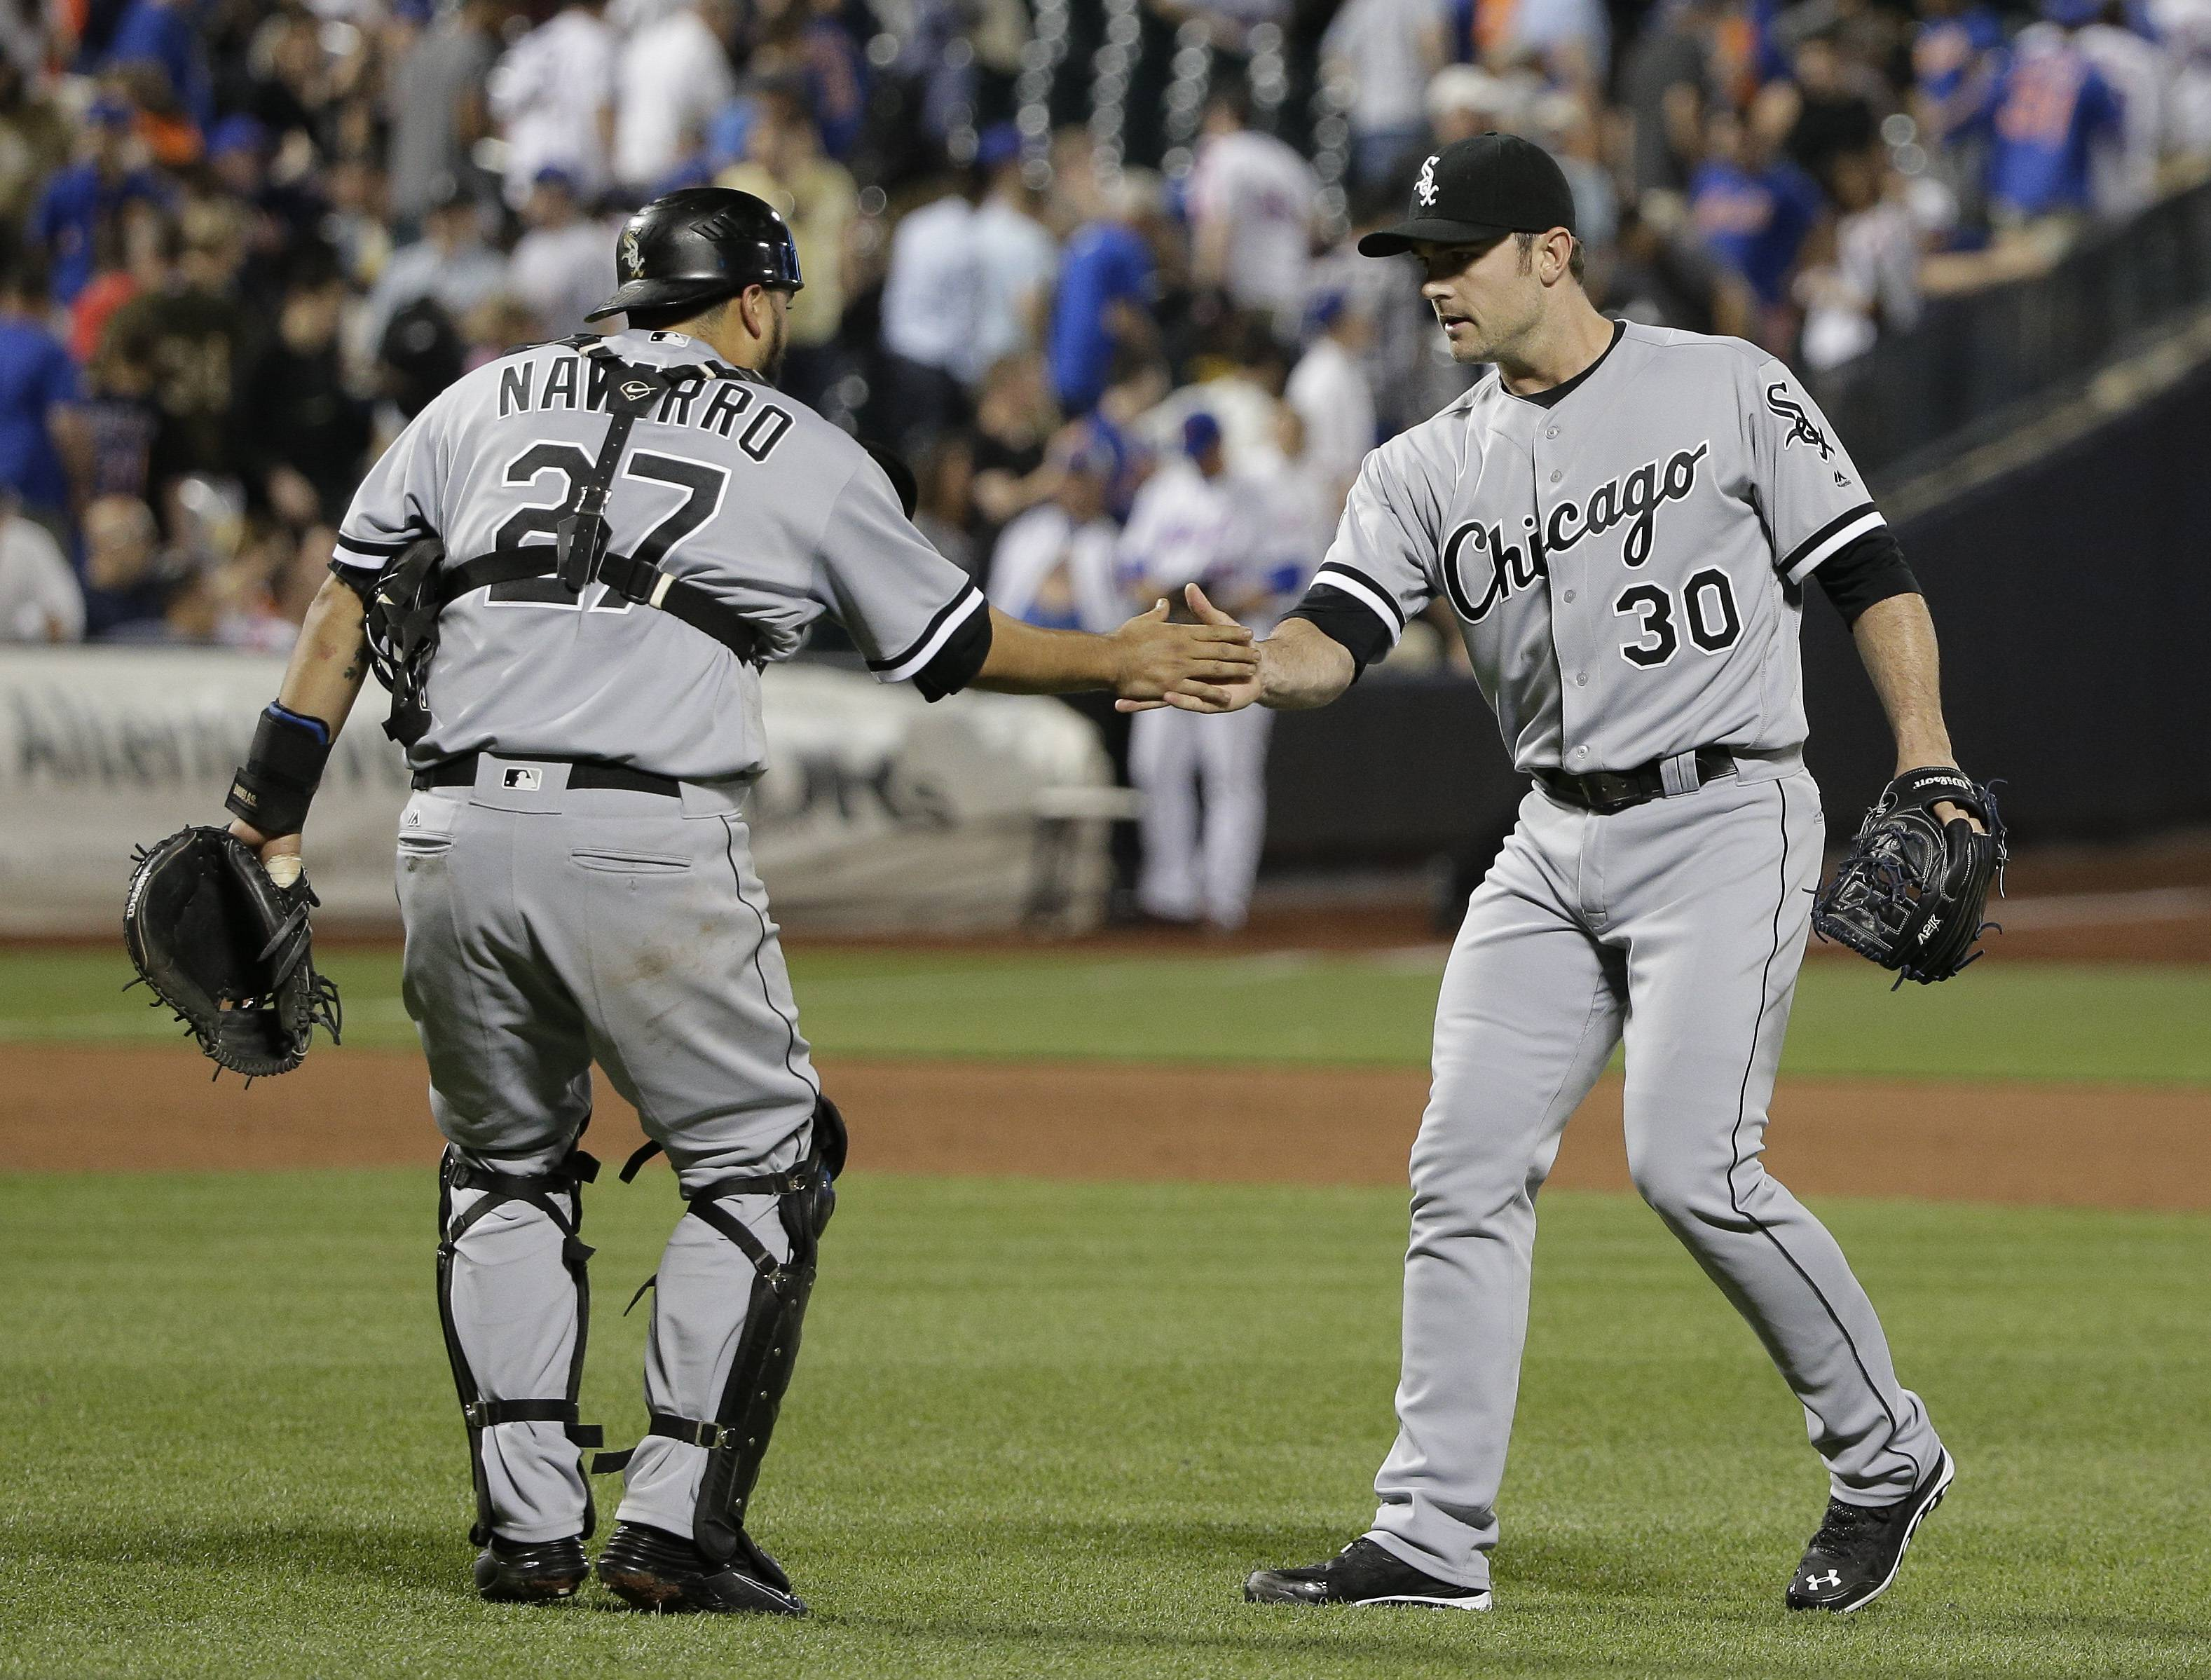 Tyler Saladino hit a go-ahead homer in the eighth inning and the White Sox rallied from an early four-run deficit, stopping a seven-game losing streak Tuesday night with a 6-4 victory over the New York Mets.